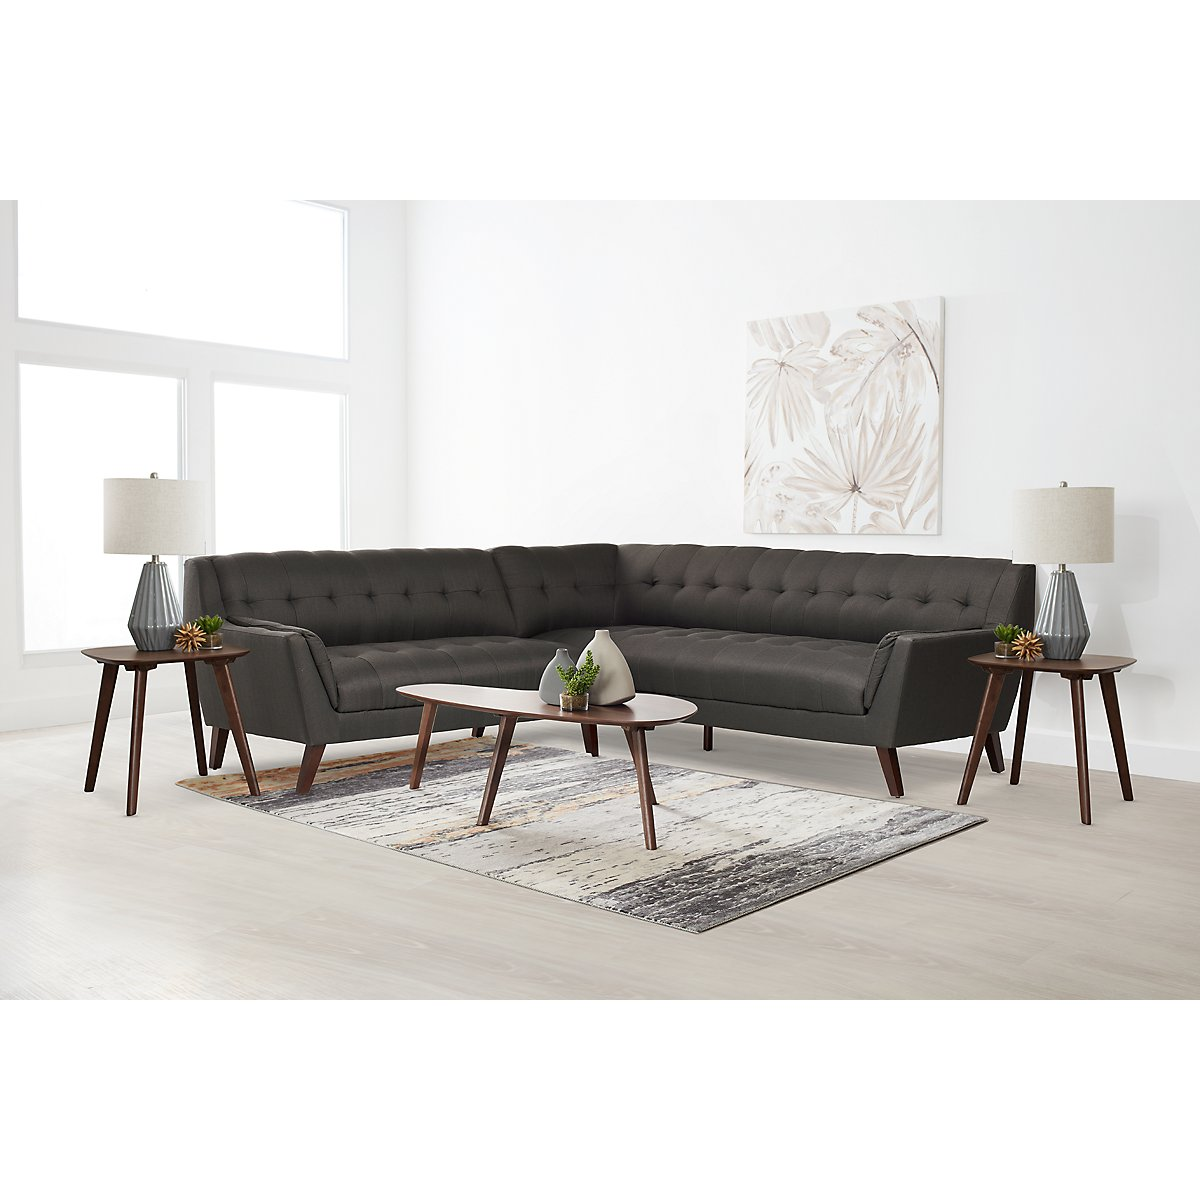 Brentwood Dark Gray Fabric 6-Piece Living Room Package ...